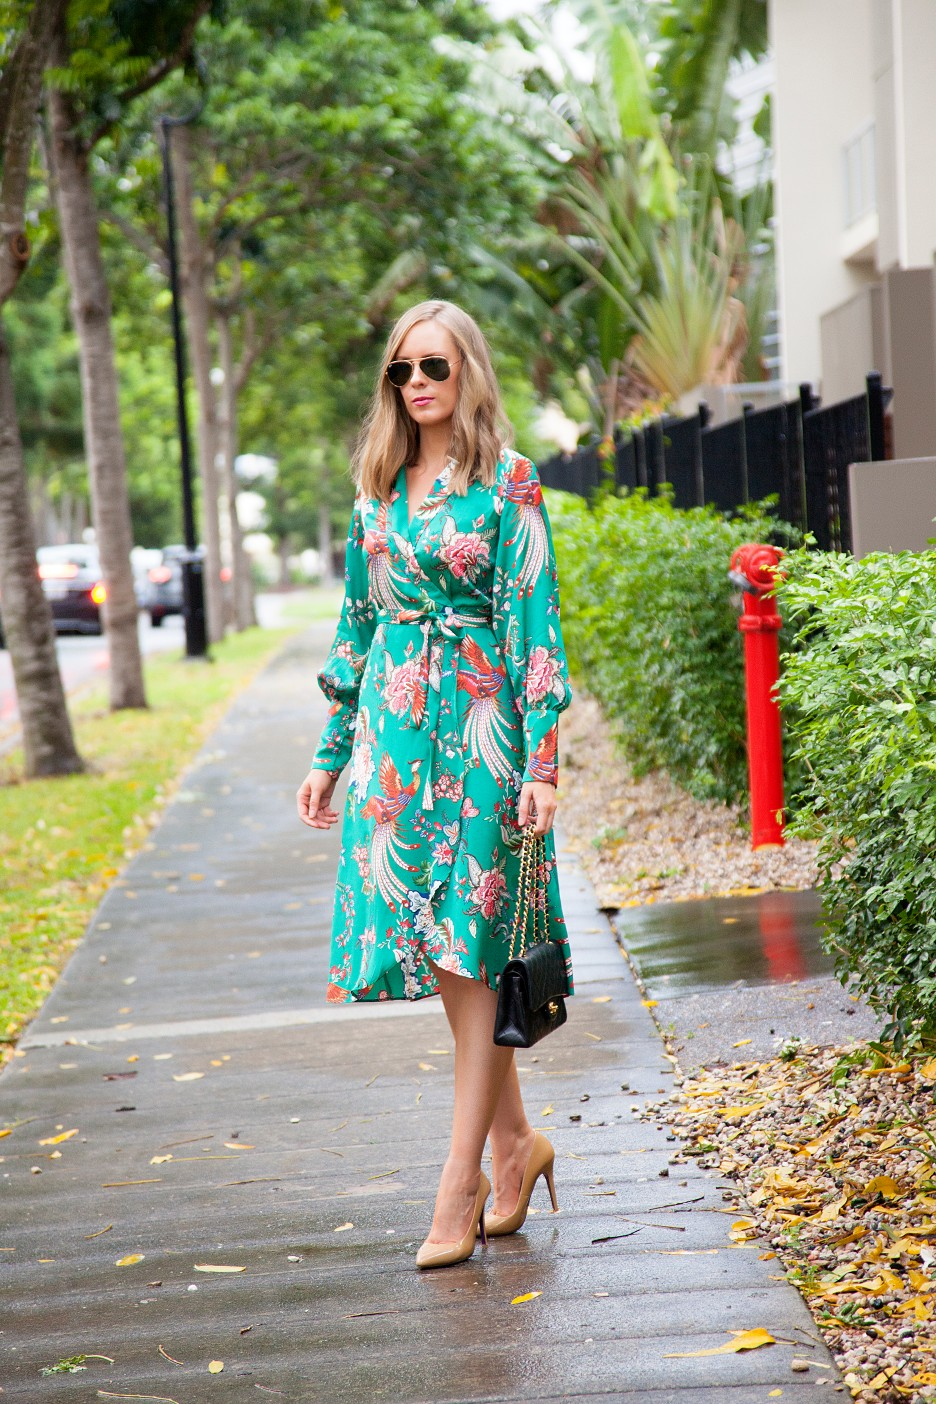 silk pajama print green emerald dress fashion blogger outfit ideas chanel flap handbag lauren slade style elixir 8